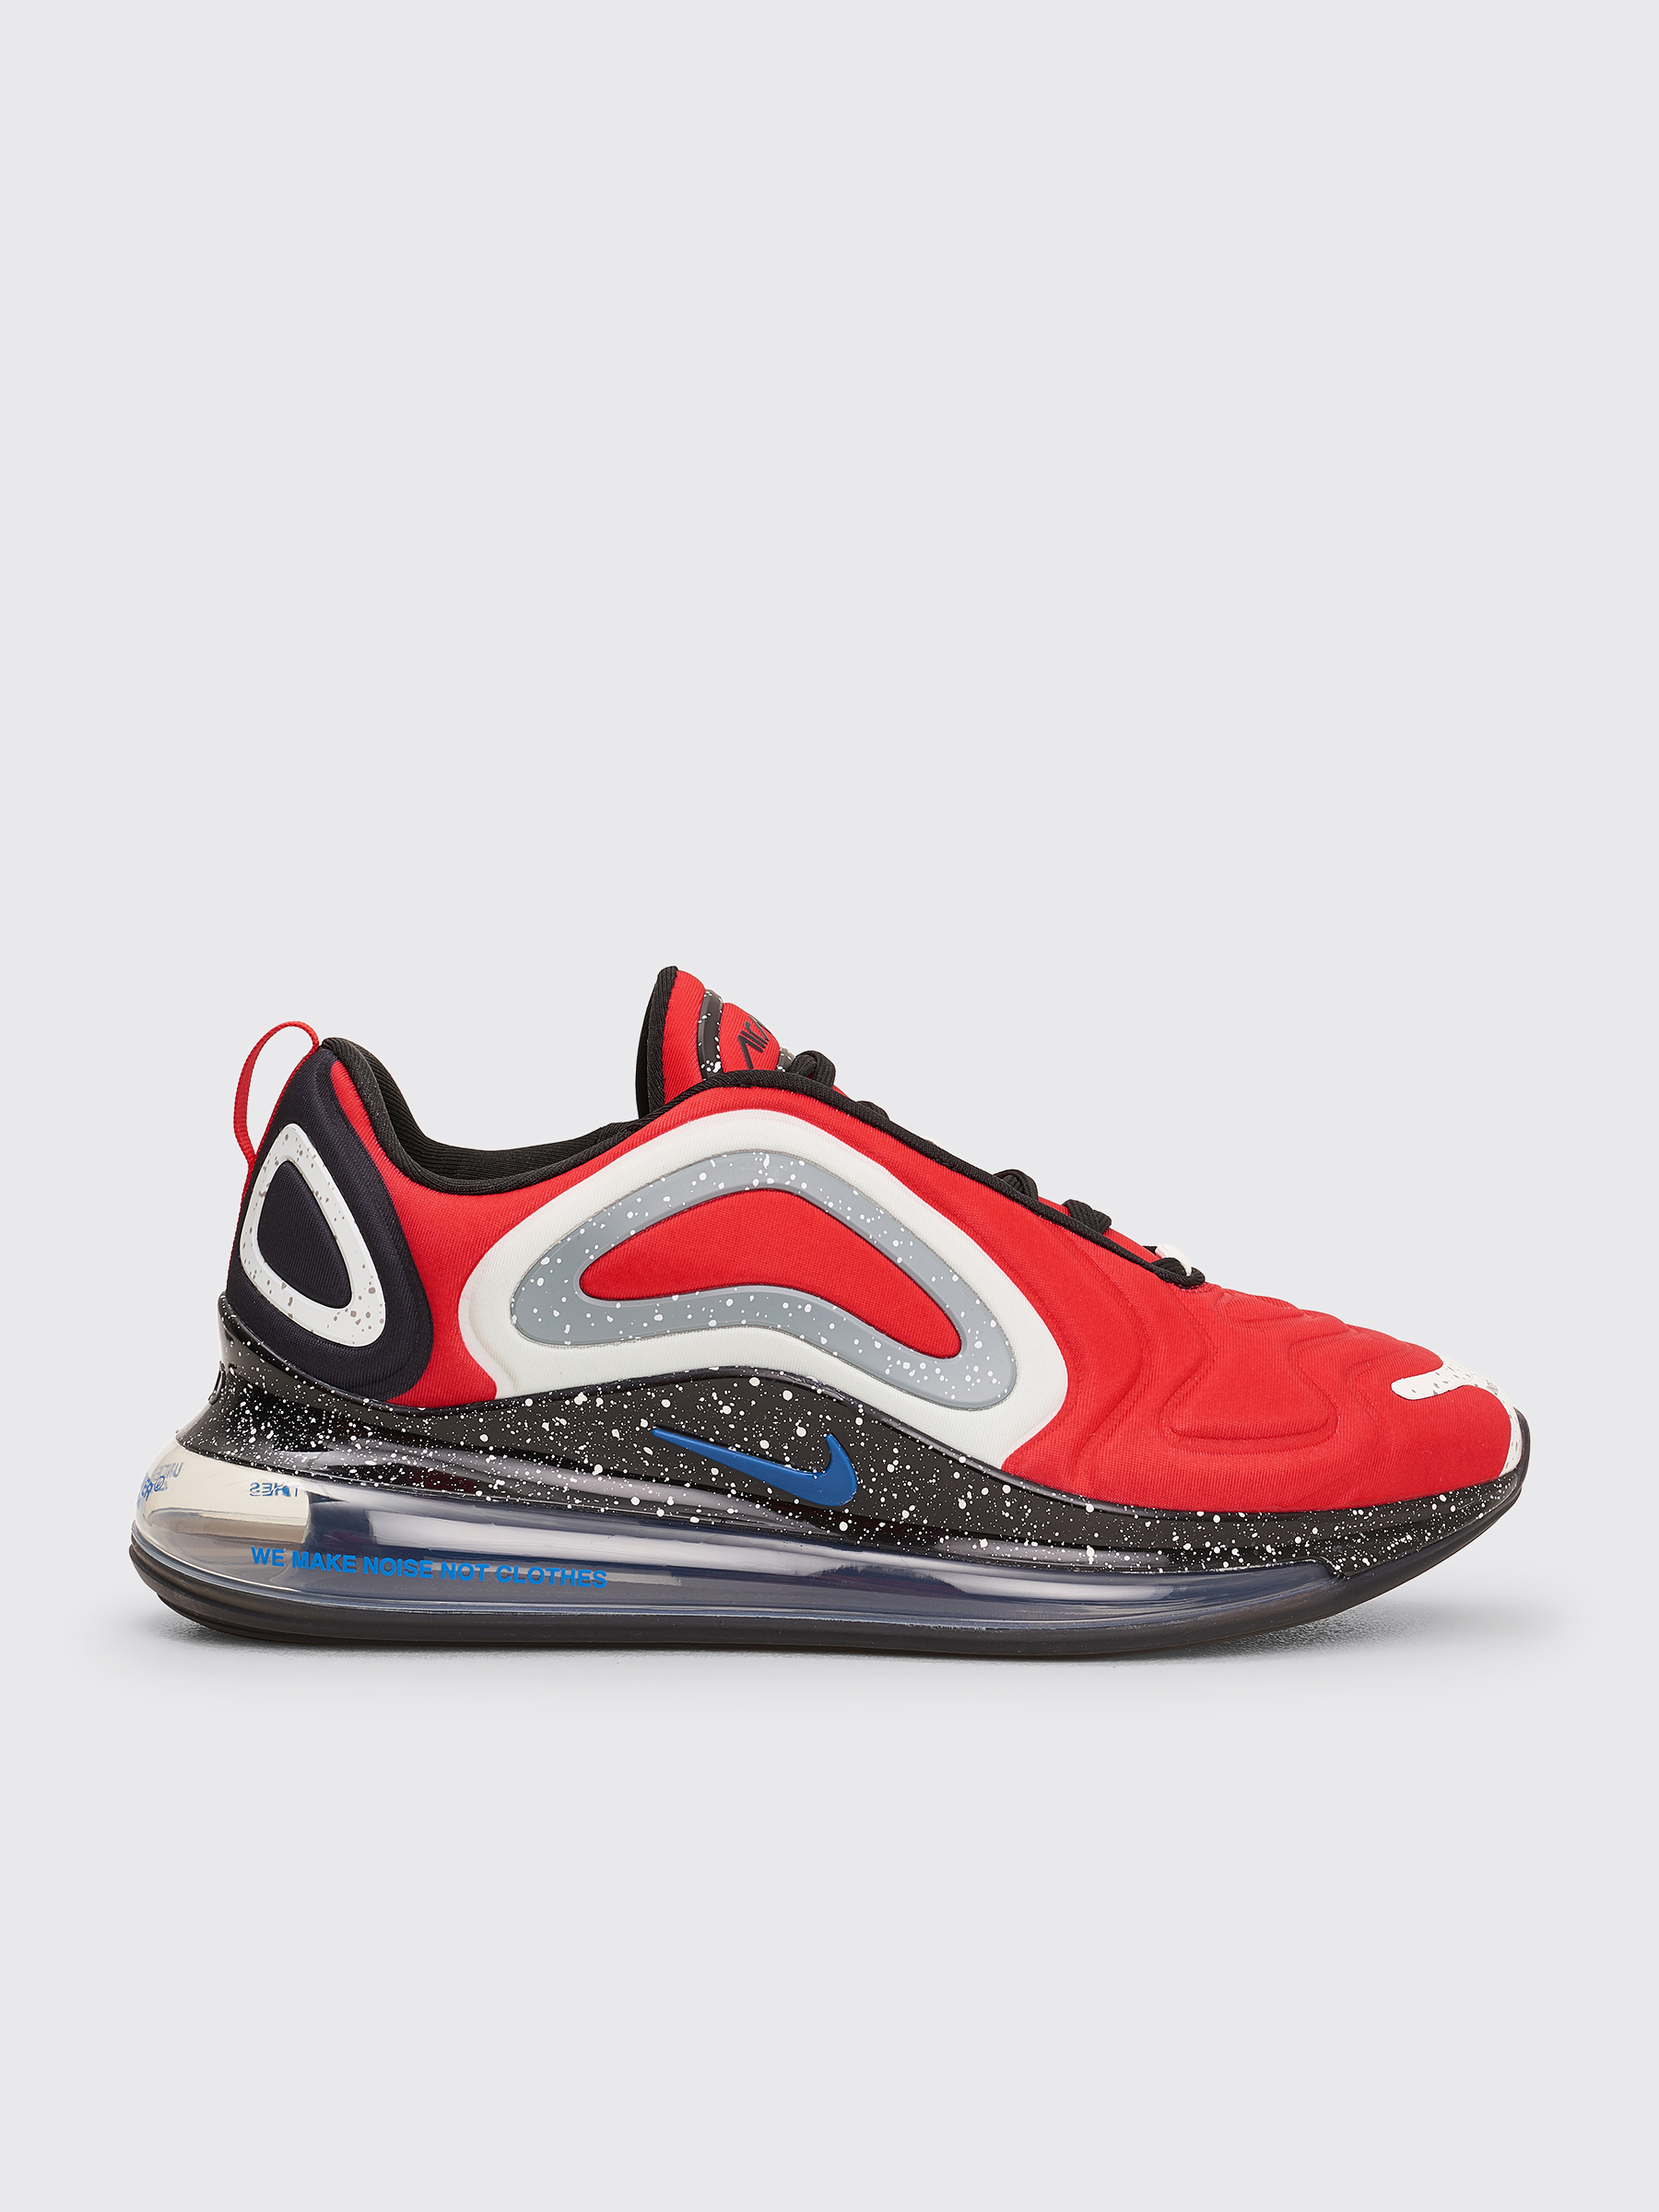 Tres Bien Nike X Undercover Air Max 720 University Red